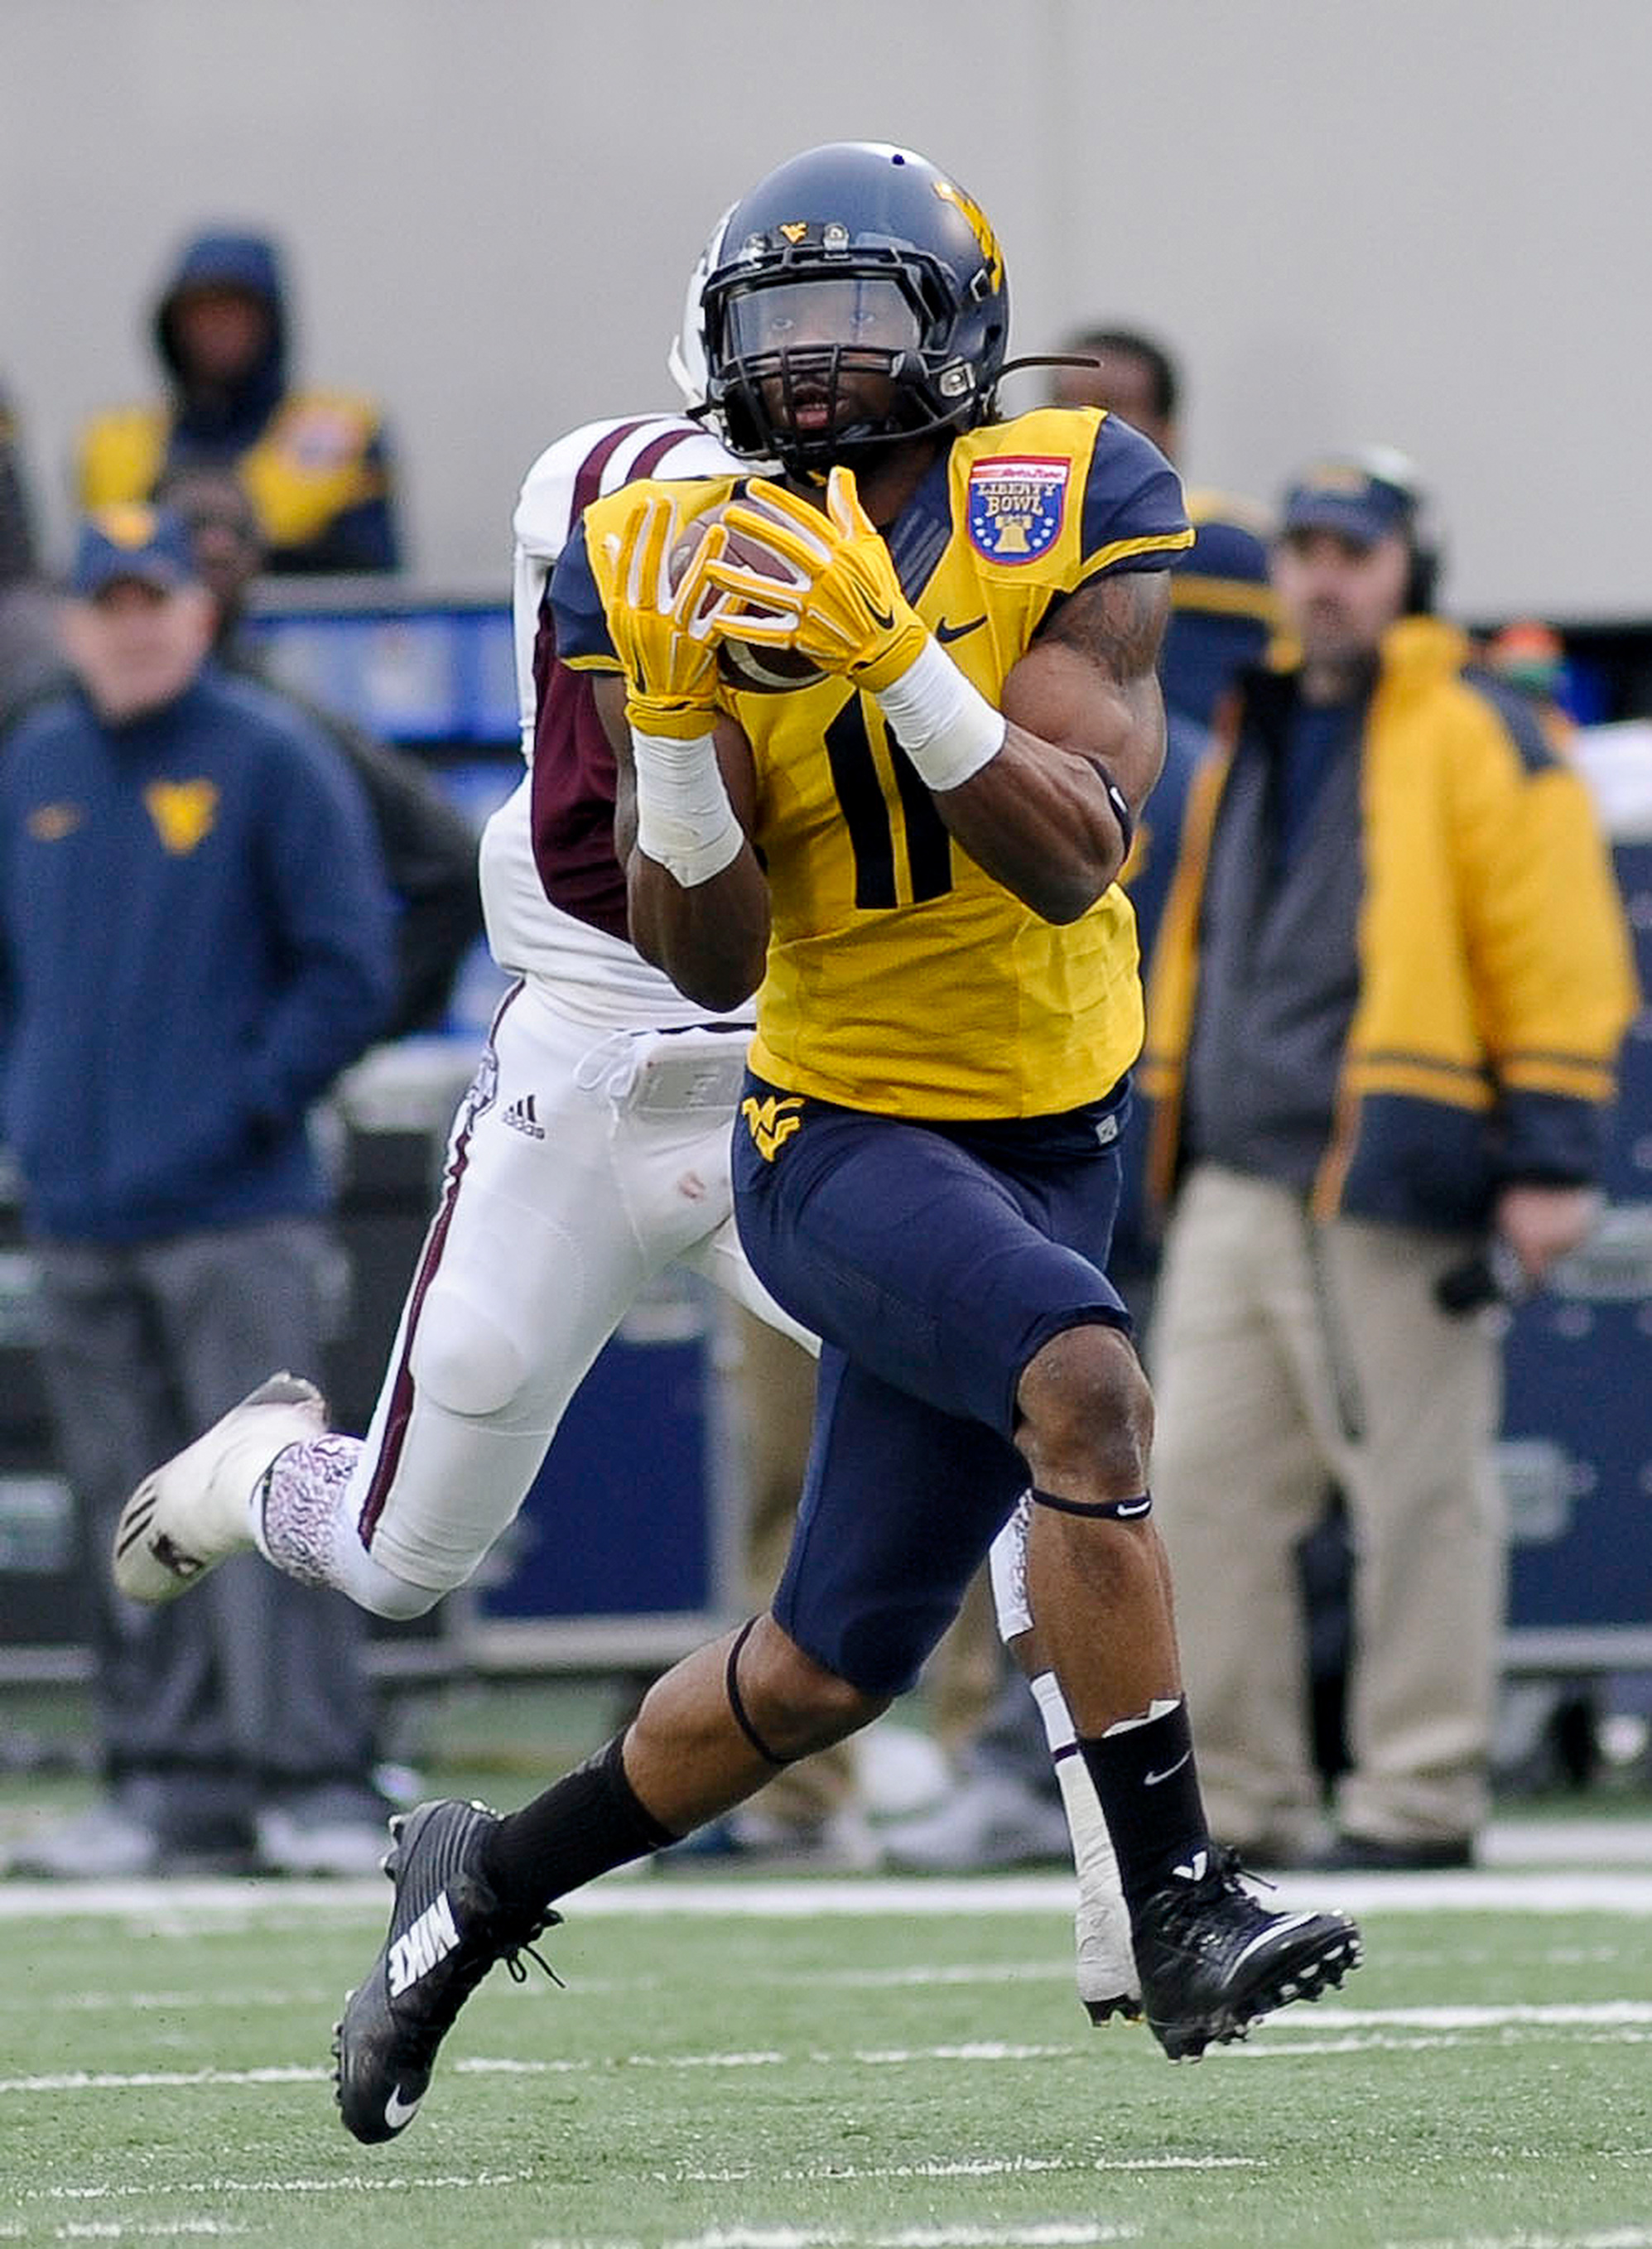 Kevin White (USA TODAY Sports)